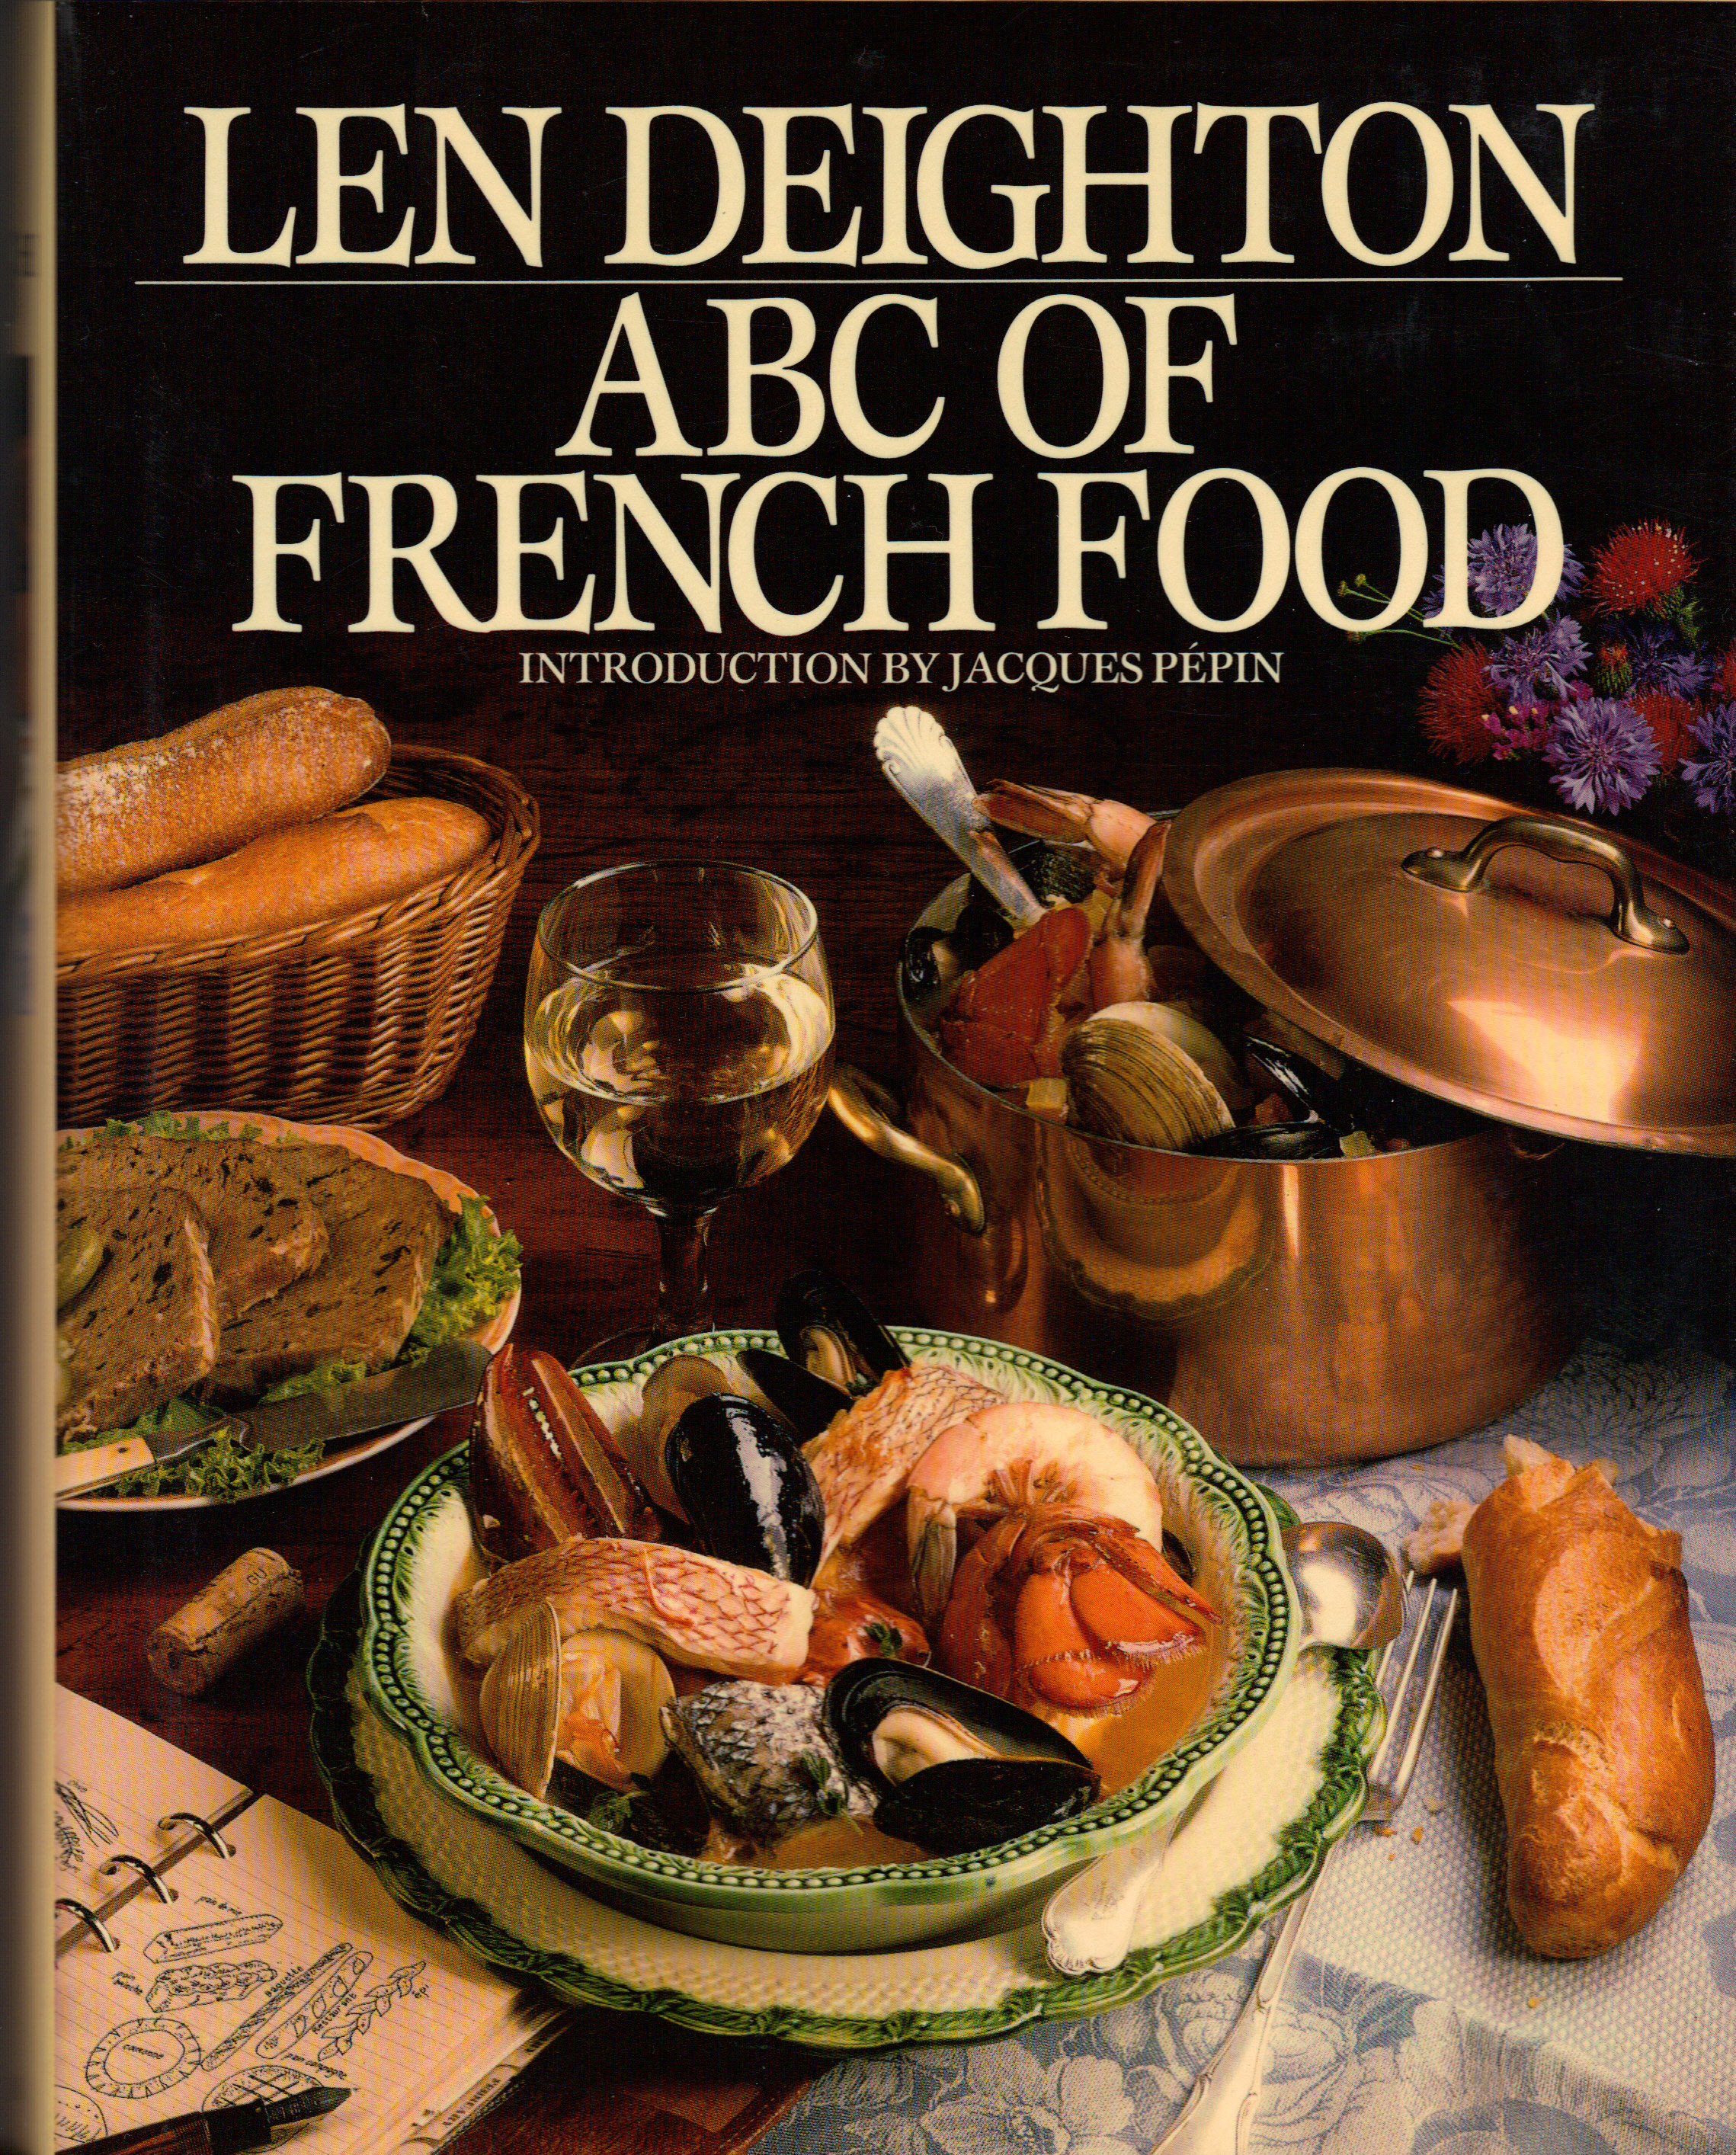 Image for ABC OF FRENCH FOOD